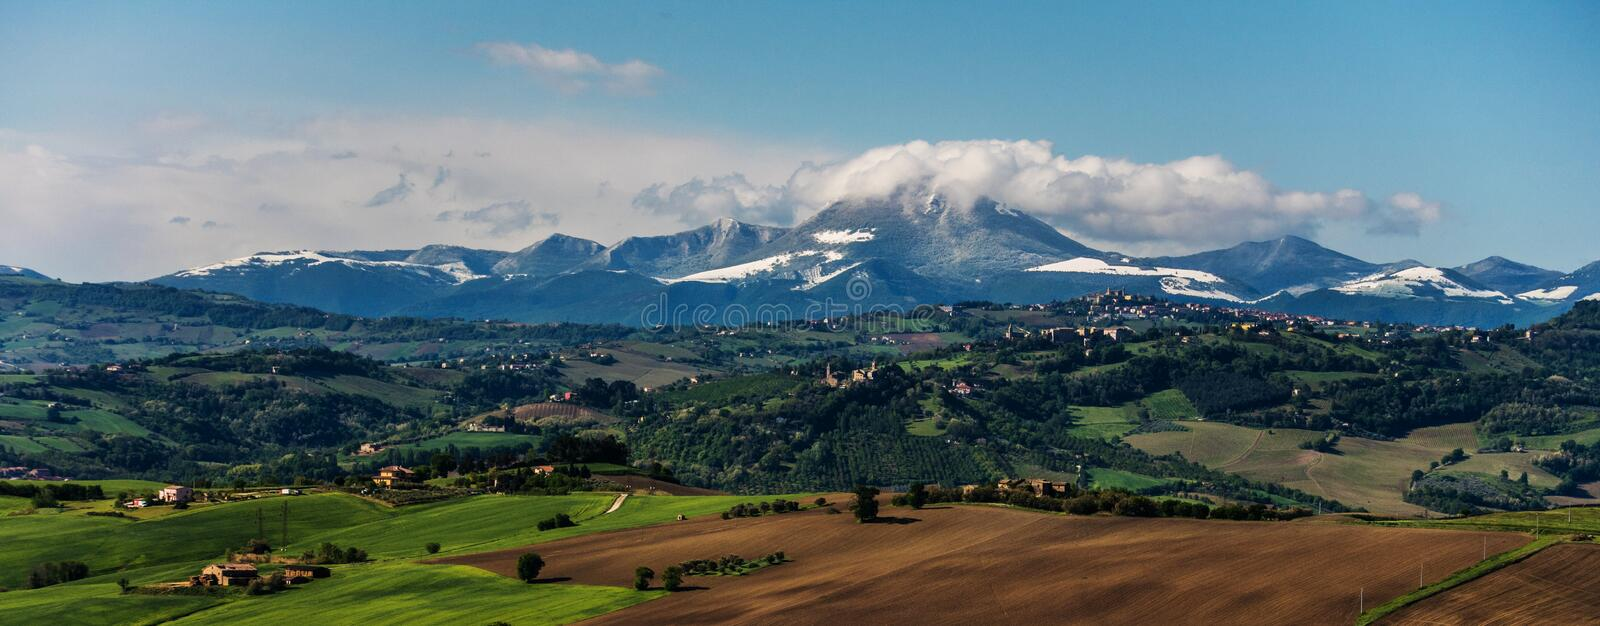 View of the Apennines. Italian hills with Apennines mountains in the background royalty free stock photo